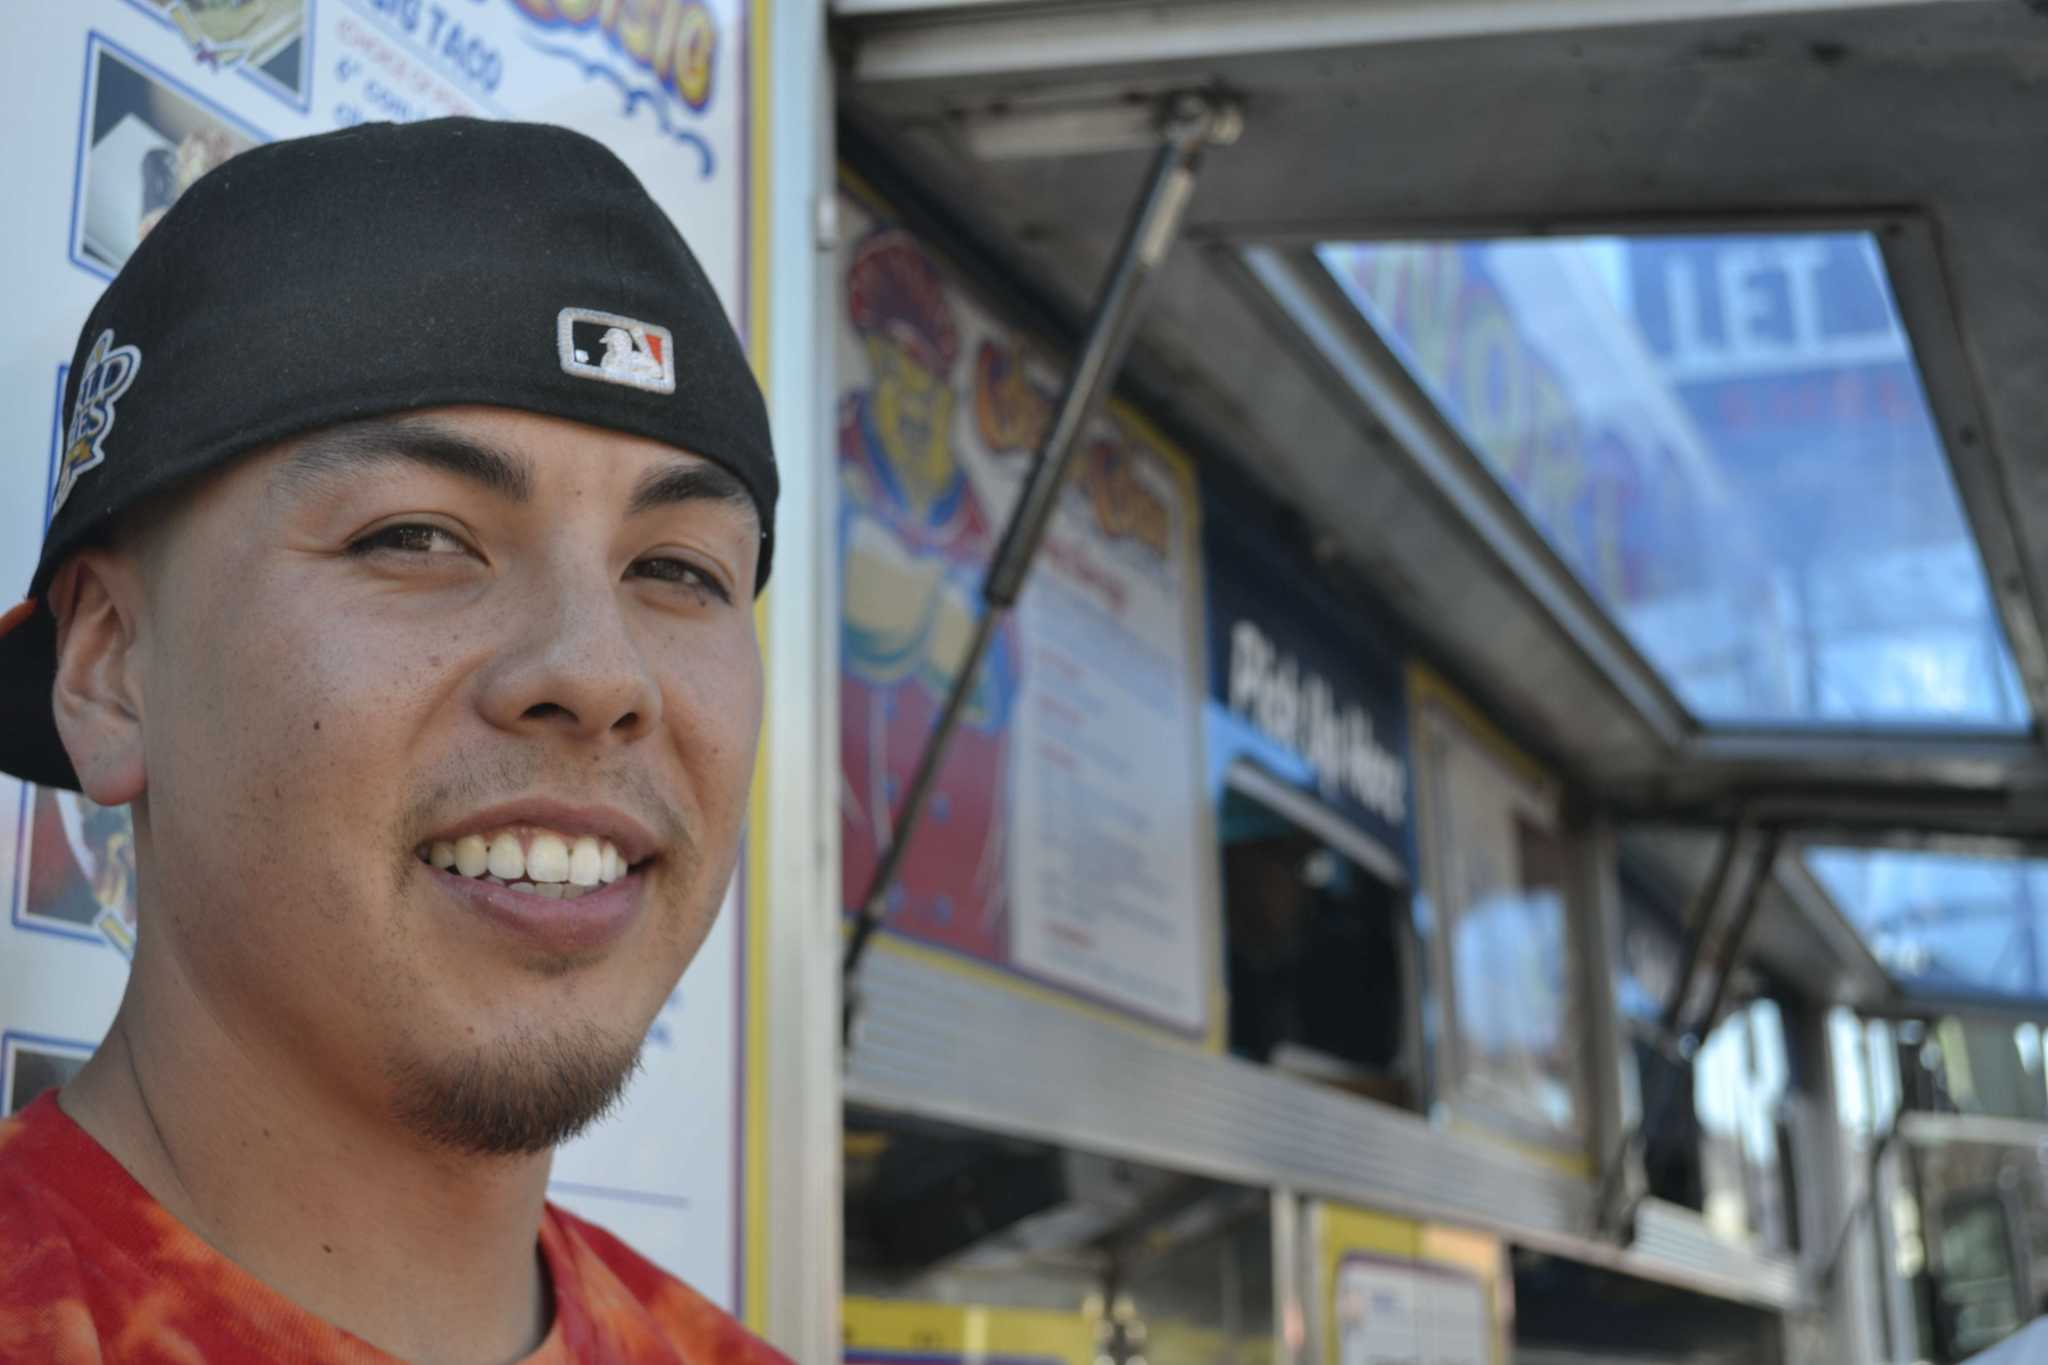 Sf State alumnus and co-founder of Señor SiSig Evan Kidera takes a break from his busy day to pose for a photo in front of his truck at the Soma Street Food Park Friday afternoon, Oct. 3, 2014.